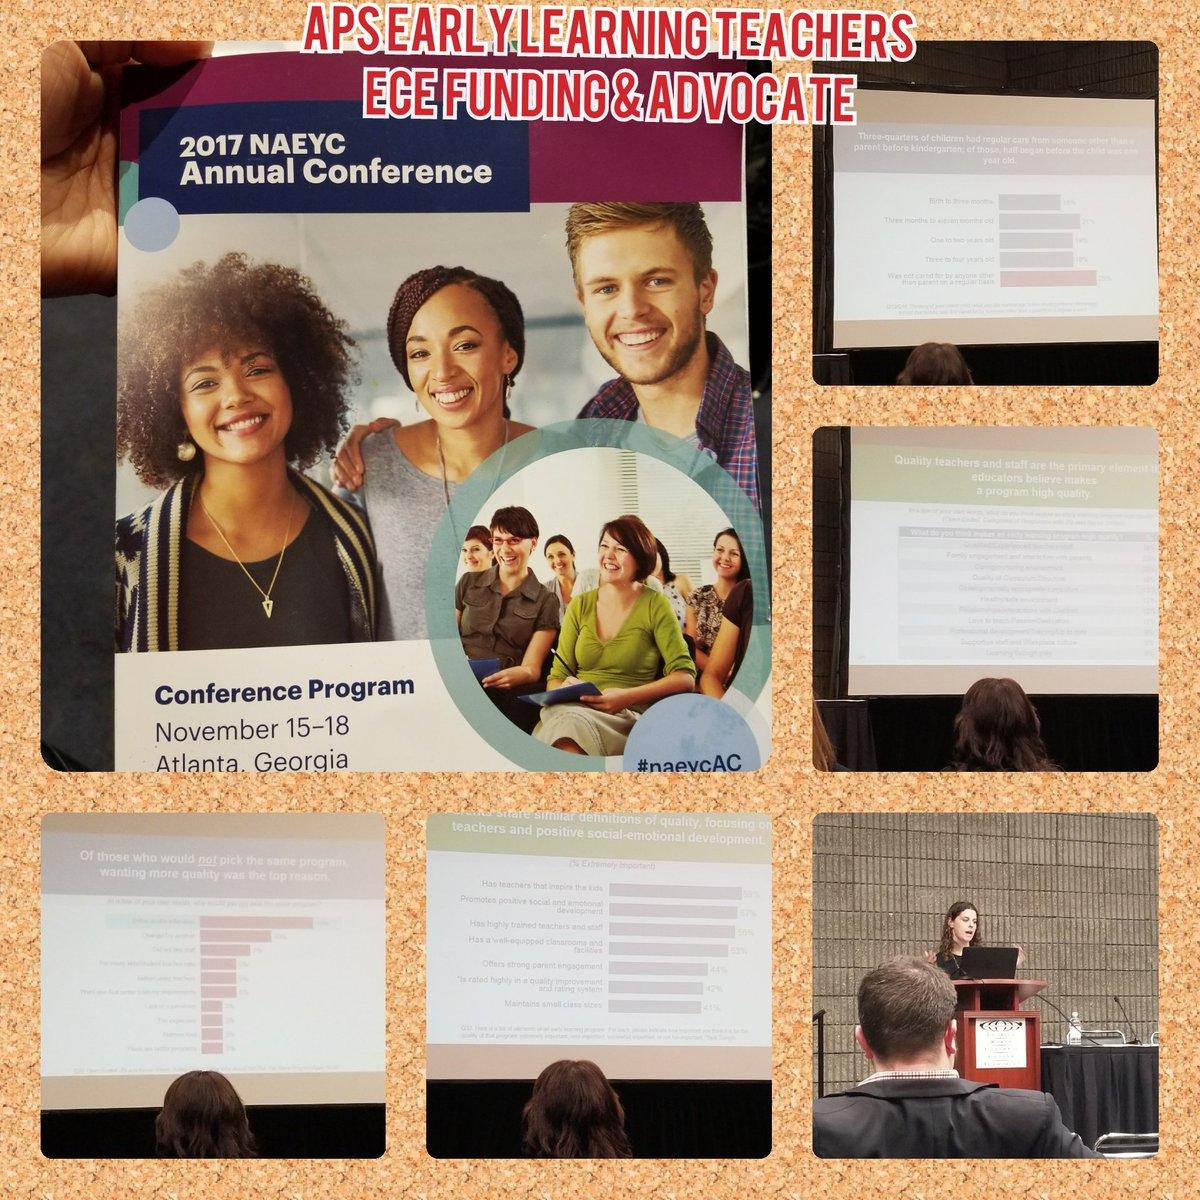 Understanding the shared responsibility for ECE within the education systems #naeycAC @aps_OEL @SydneyAhearn @DrShanaWeldon @PrincipalK_APS @APS_BoydElemAP #KNOWLEDGE <br>http://pic.twitter.com/TuAcjd2eHf